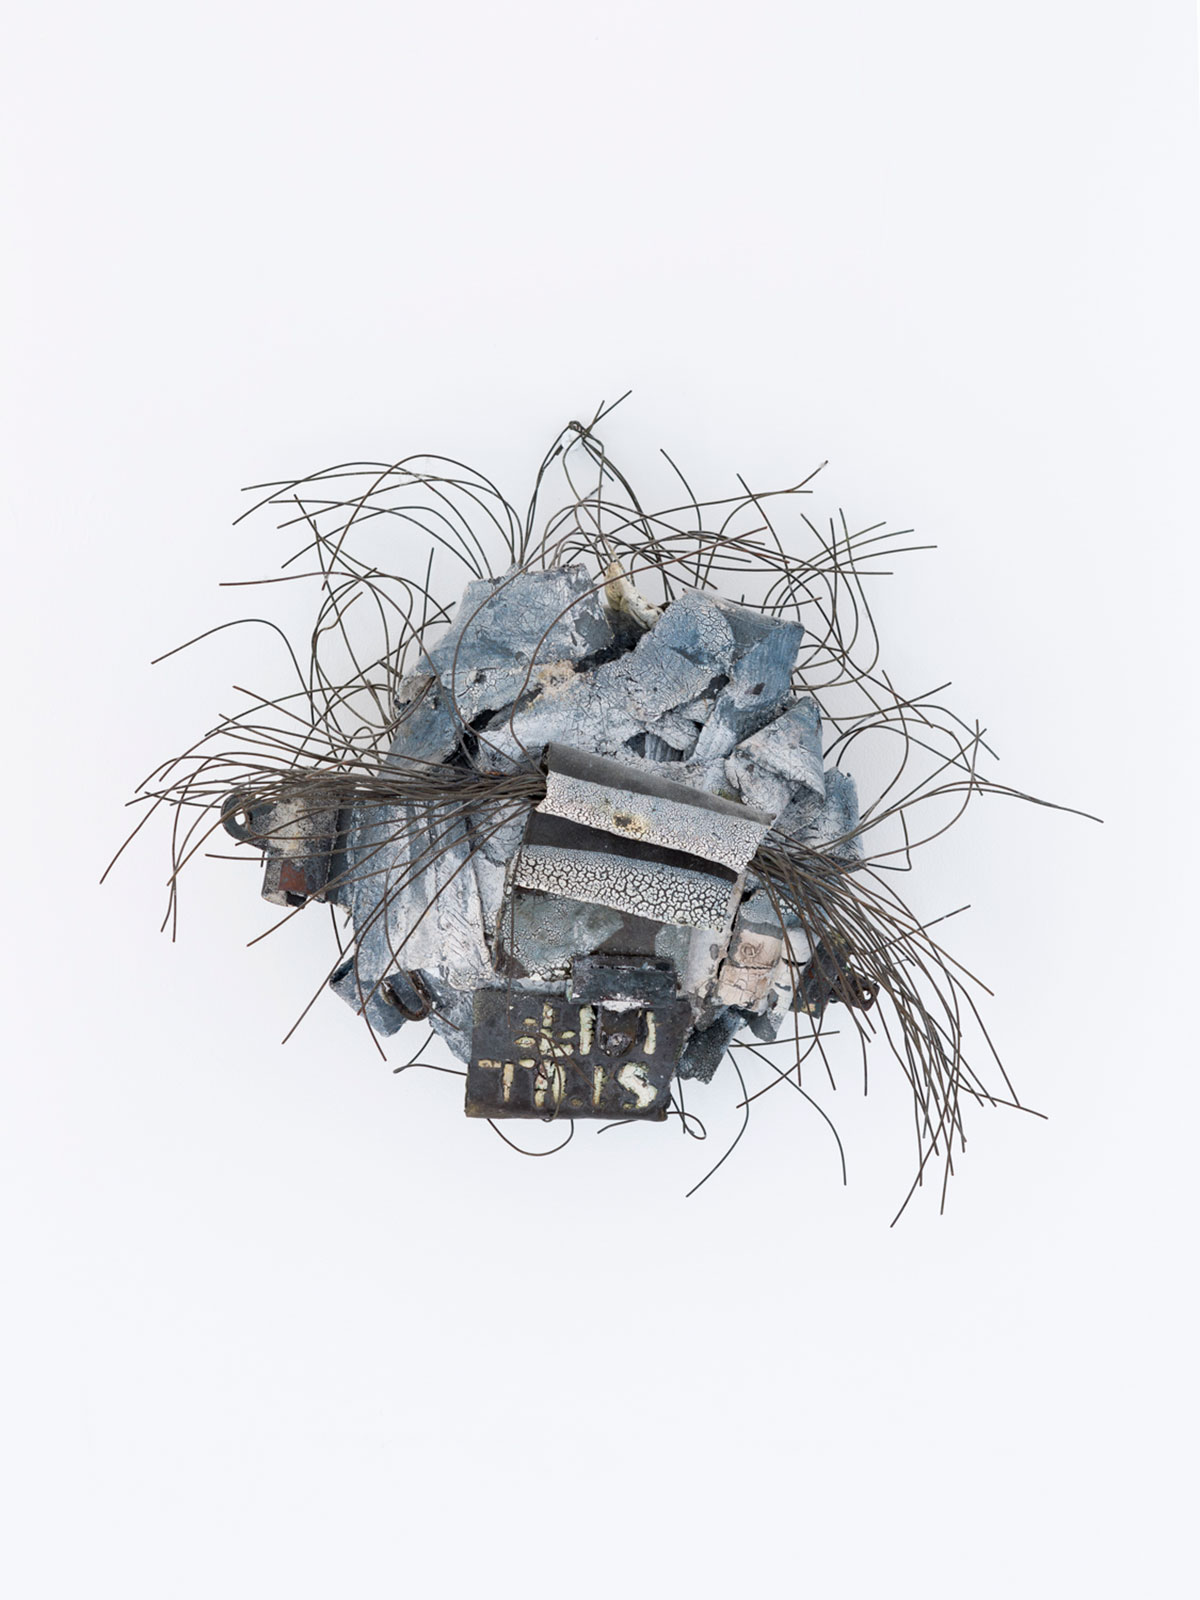 10.-Almost-off-the-Wall-2001-Ceramic-wire-38-x-38-x-19-cm - Copy.jpg